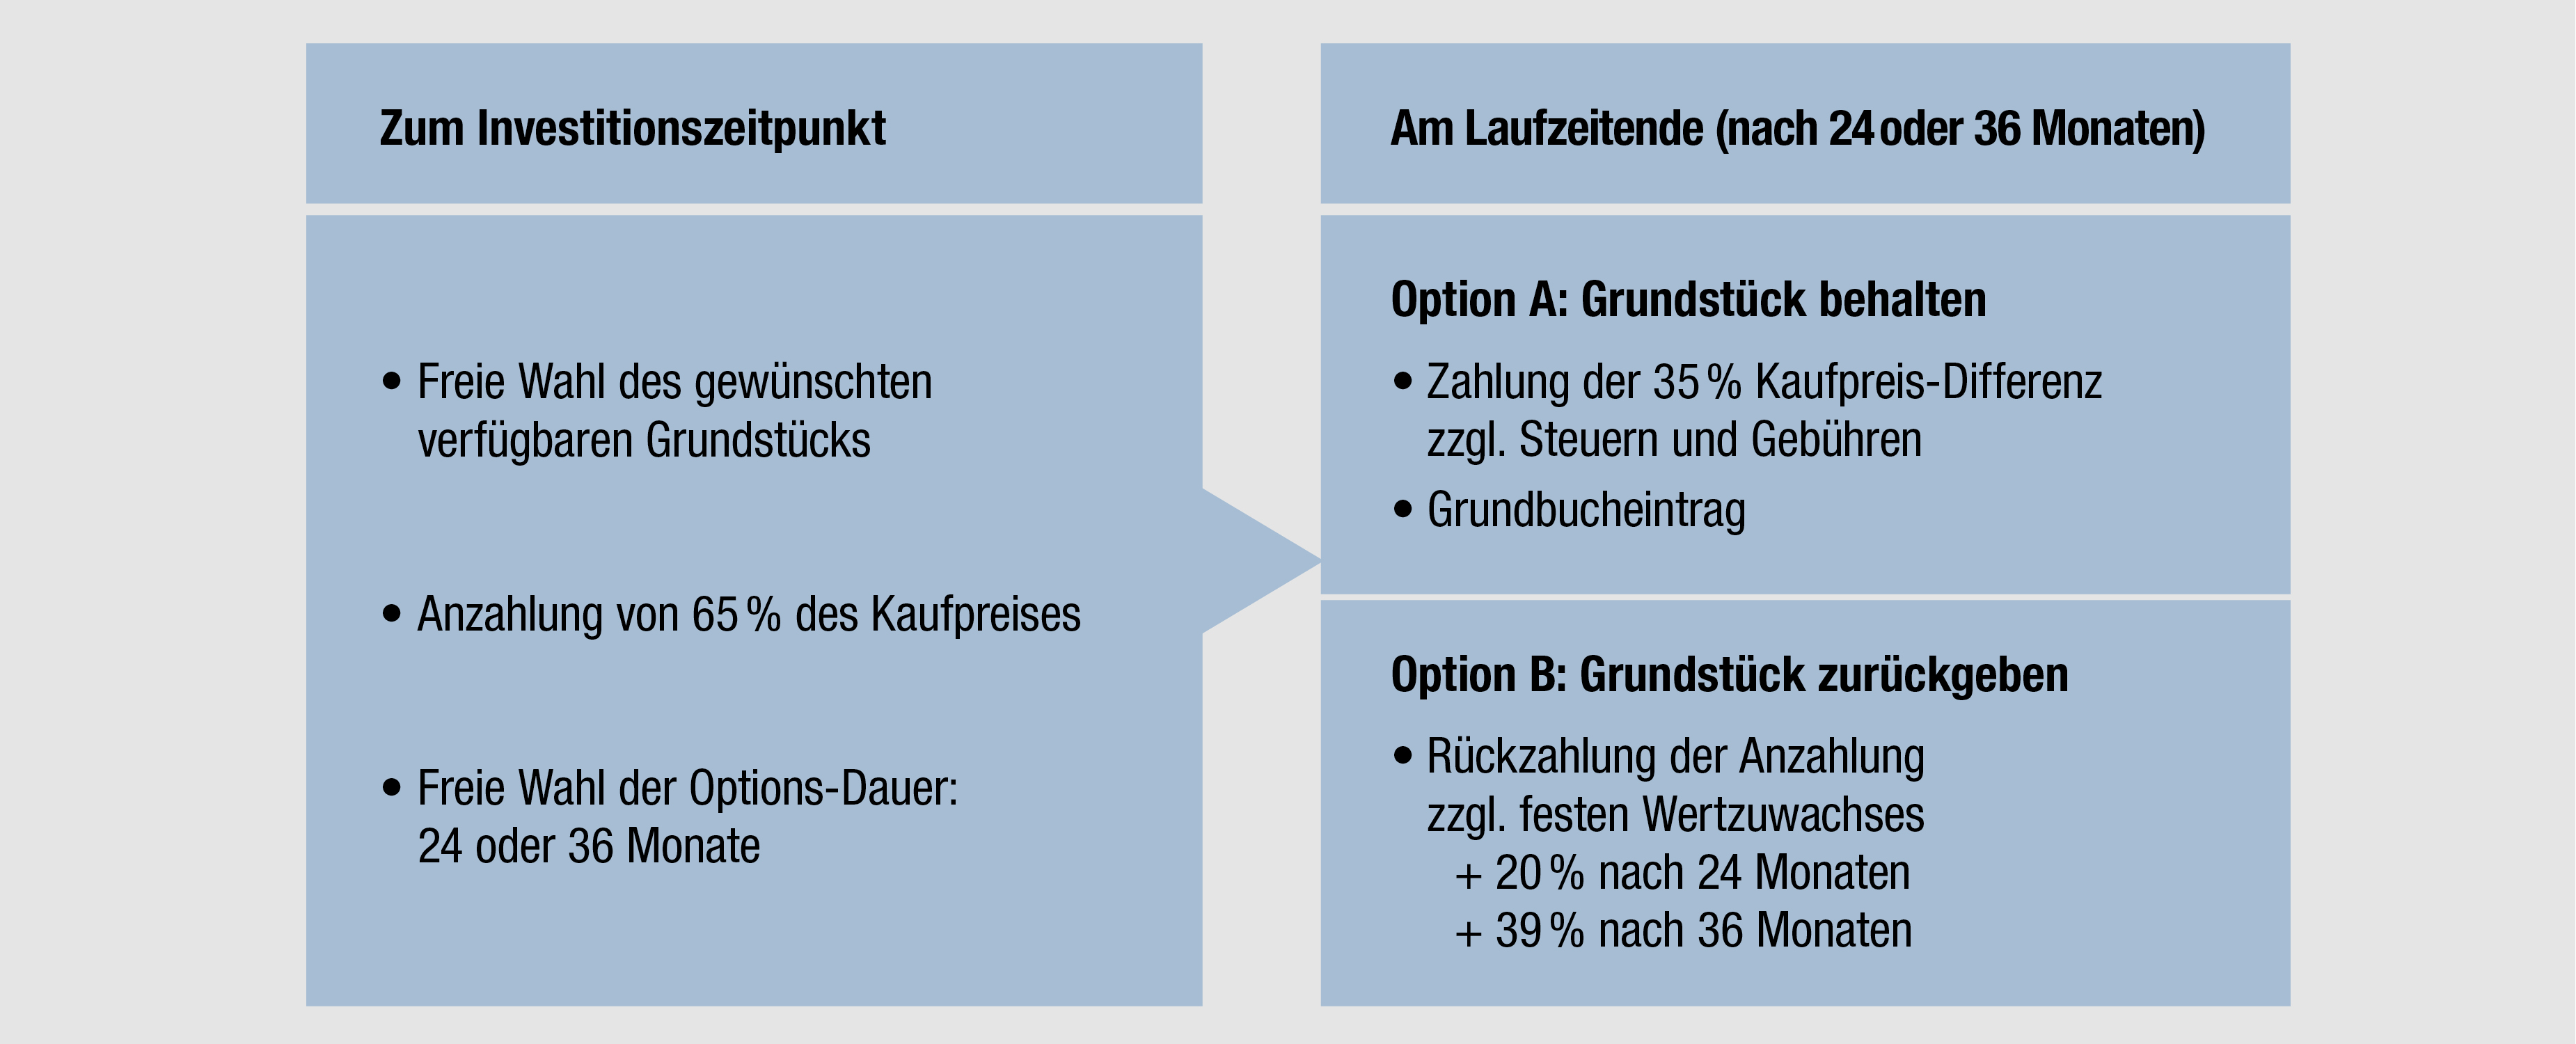 Immobilien in Hamburg - Informationen Grundstücks-Optionskauf im Forest Lakes Country Club.jpg